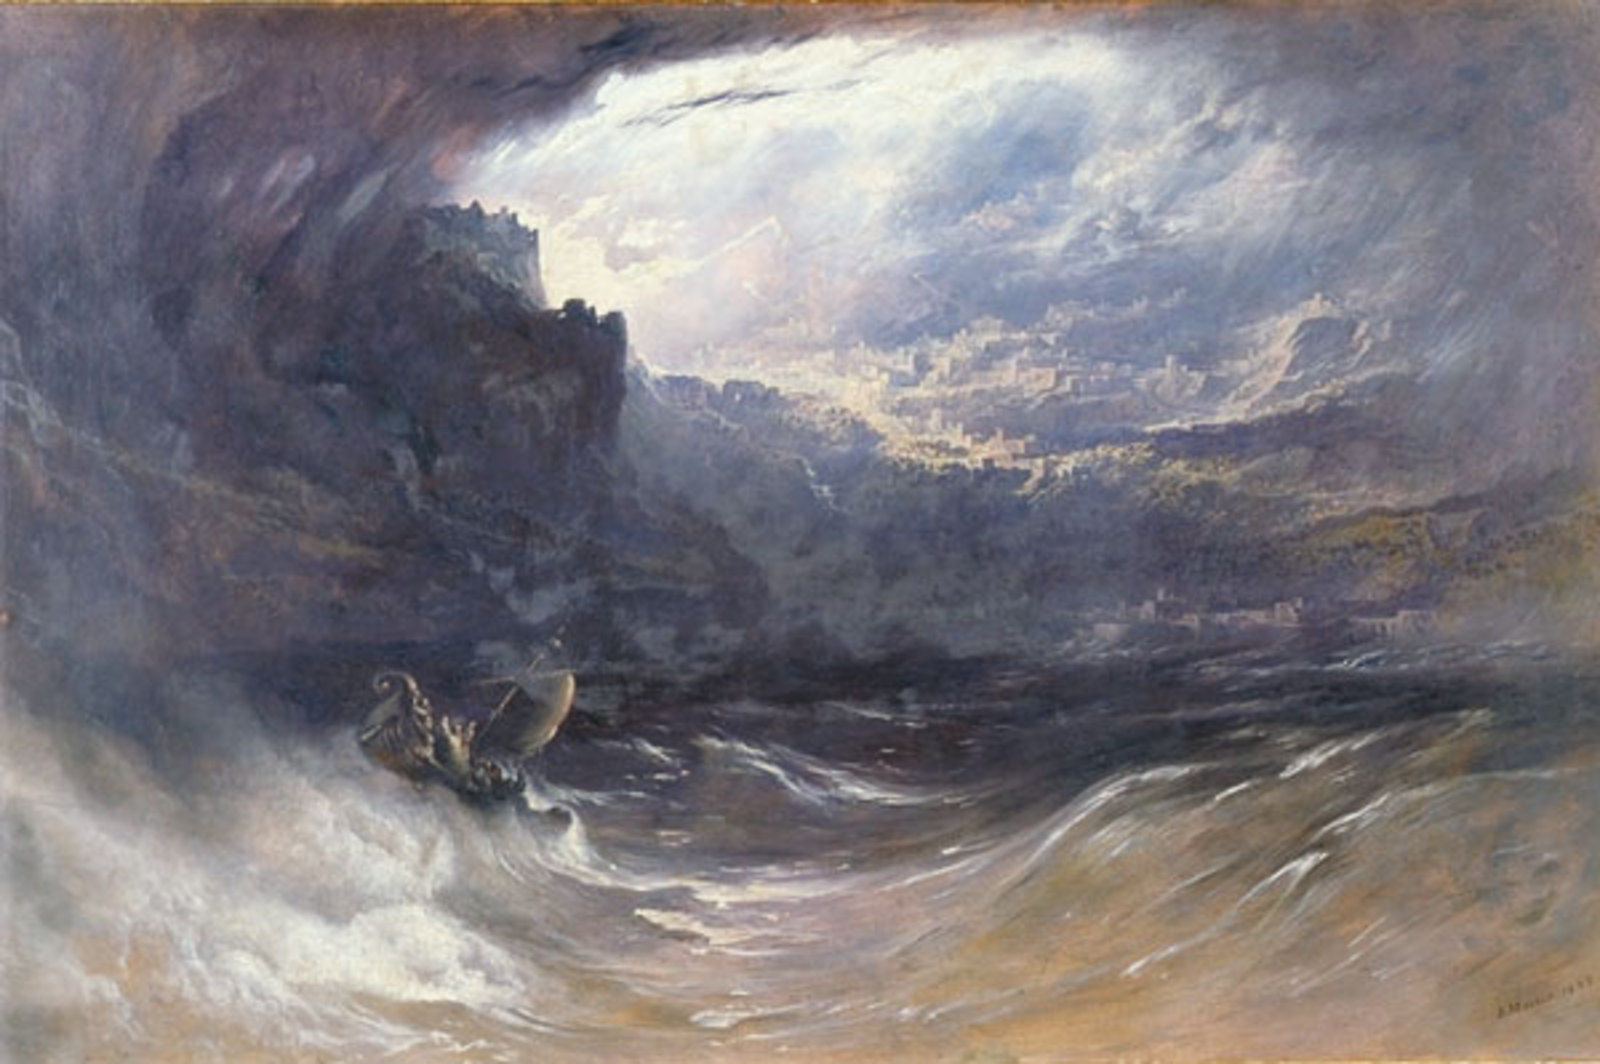 The Deluge by English romantic painter Martin John 1834